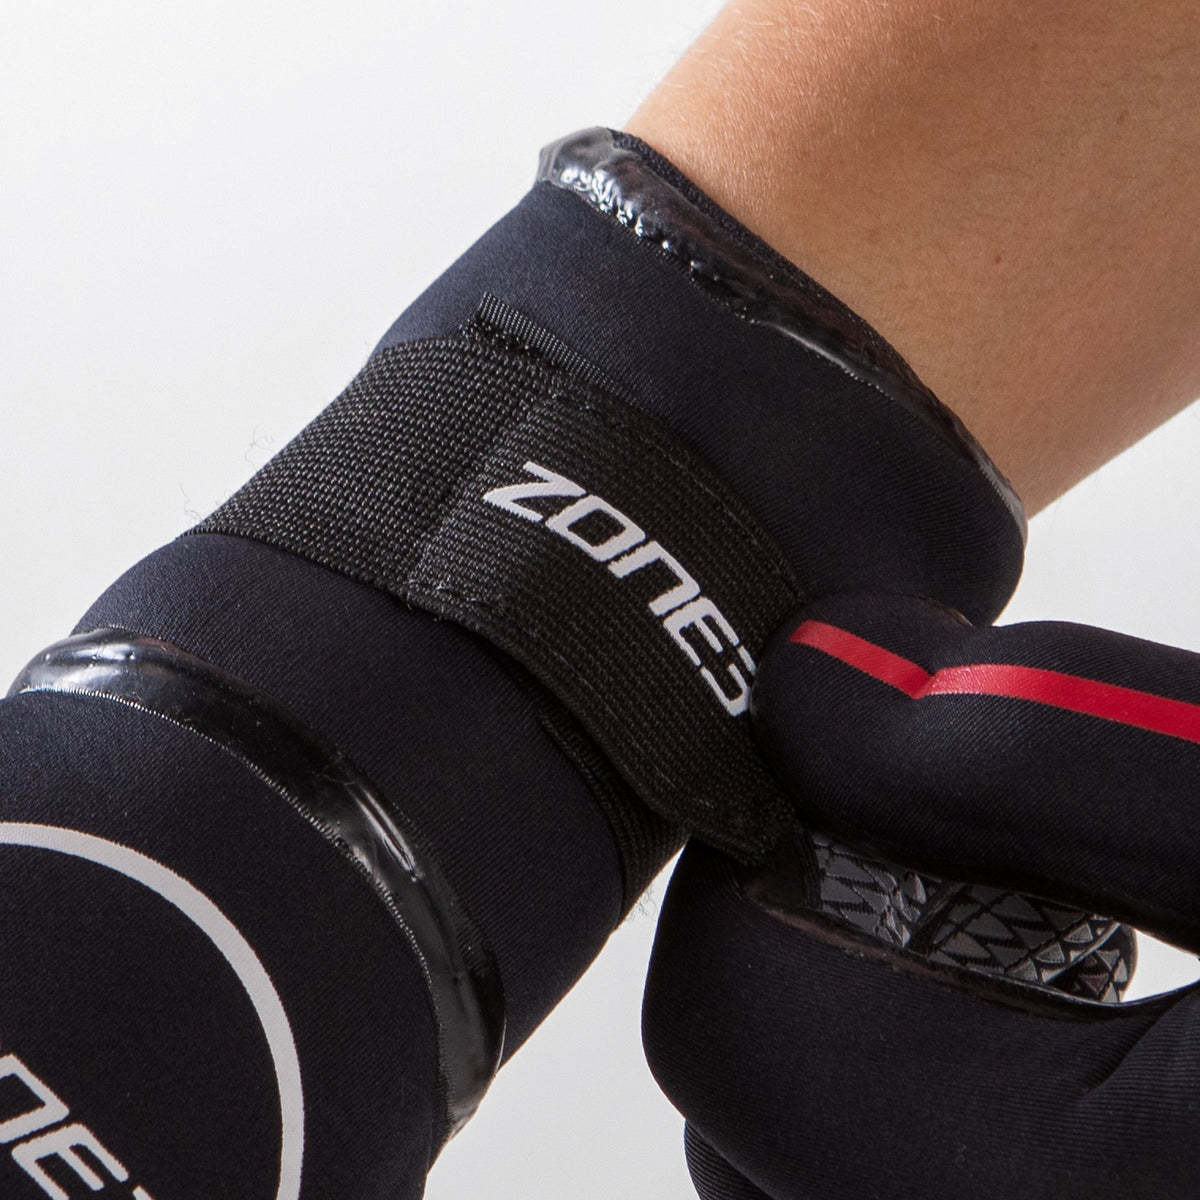 Neoprene Heat-Tech Warmth Swim Gloves wrist